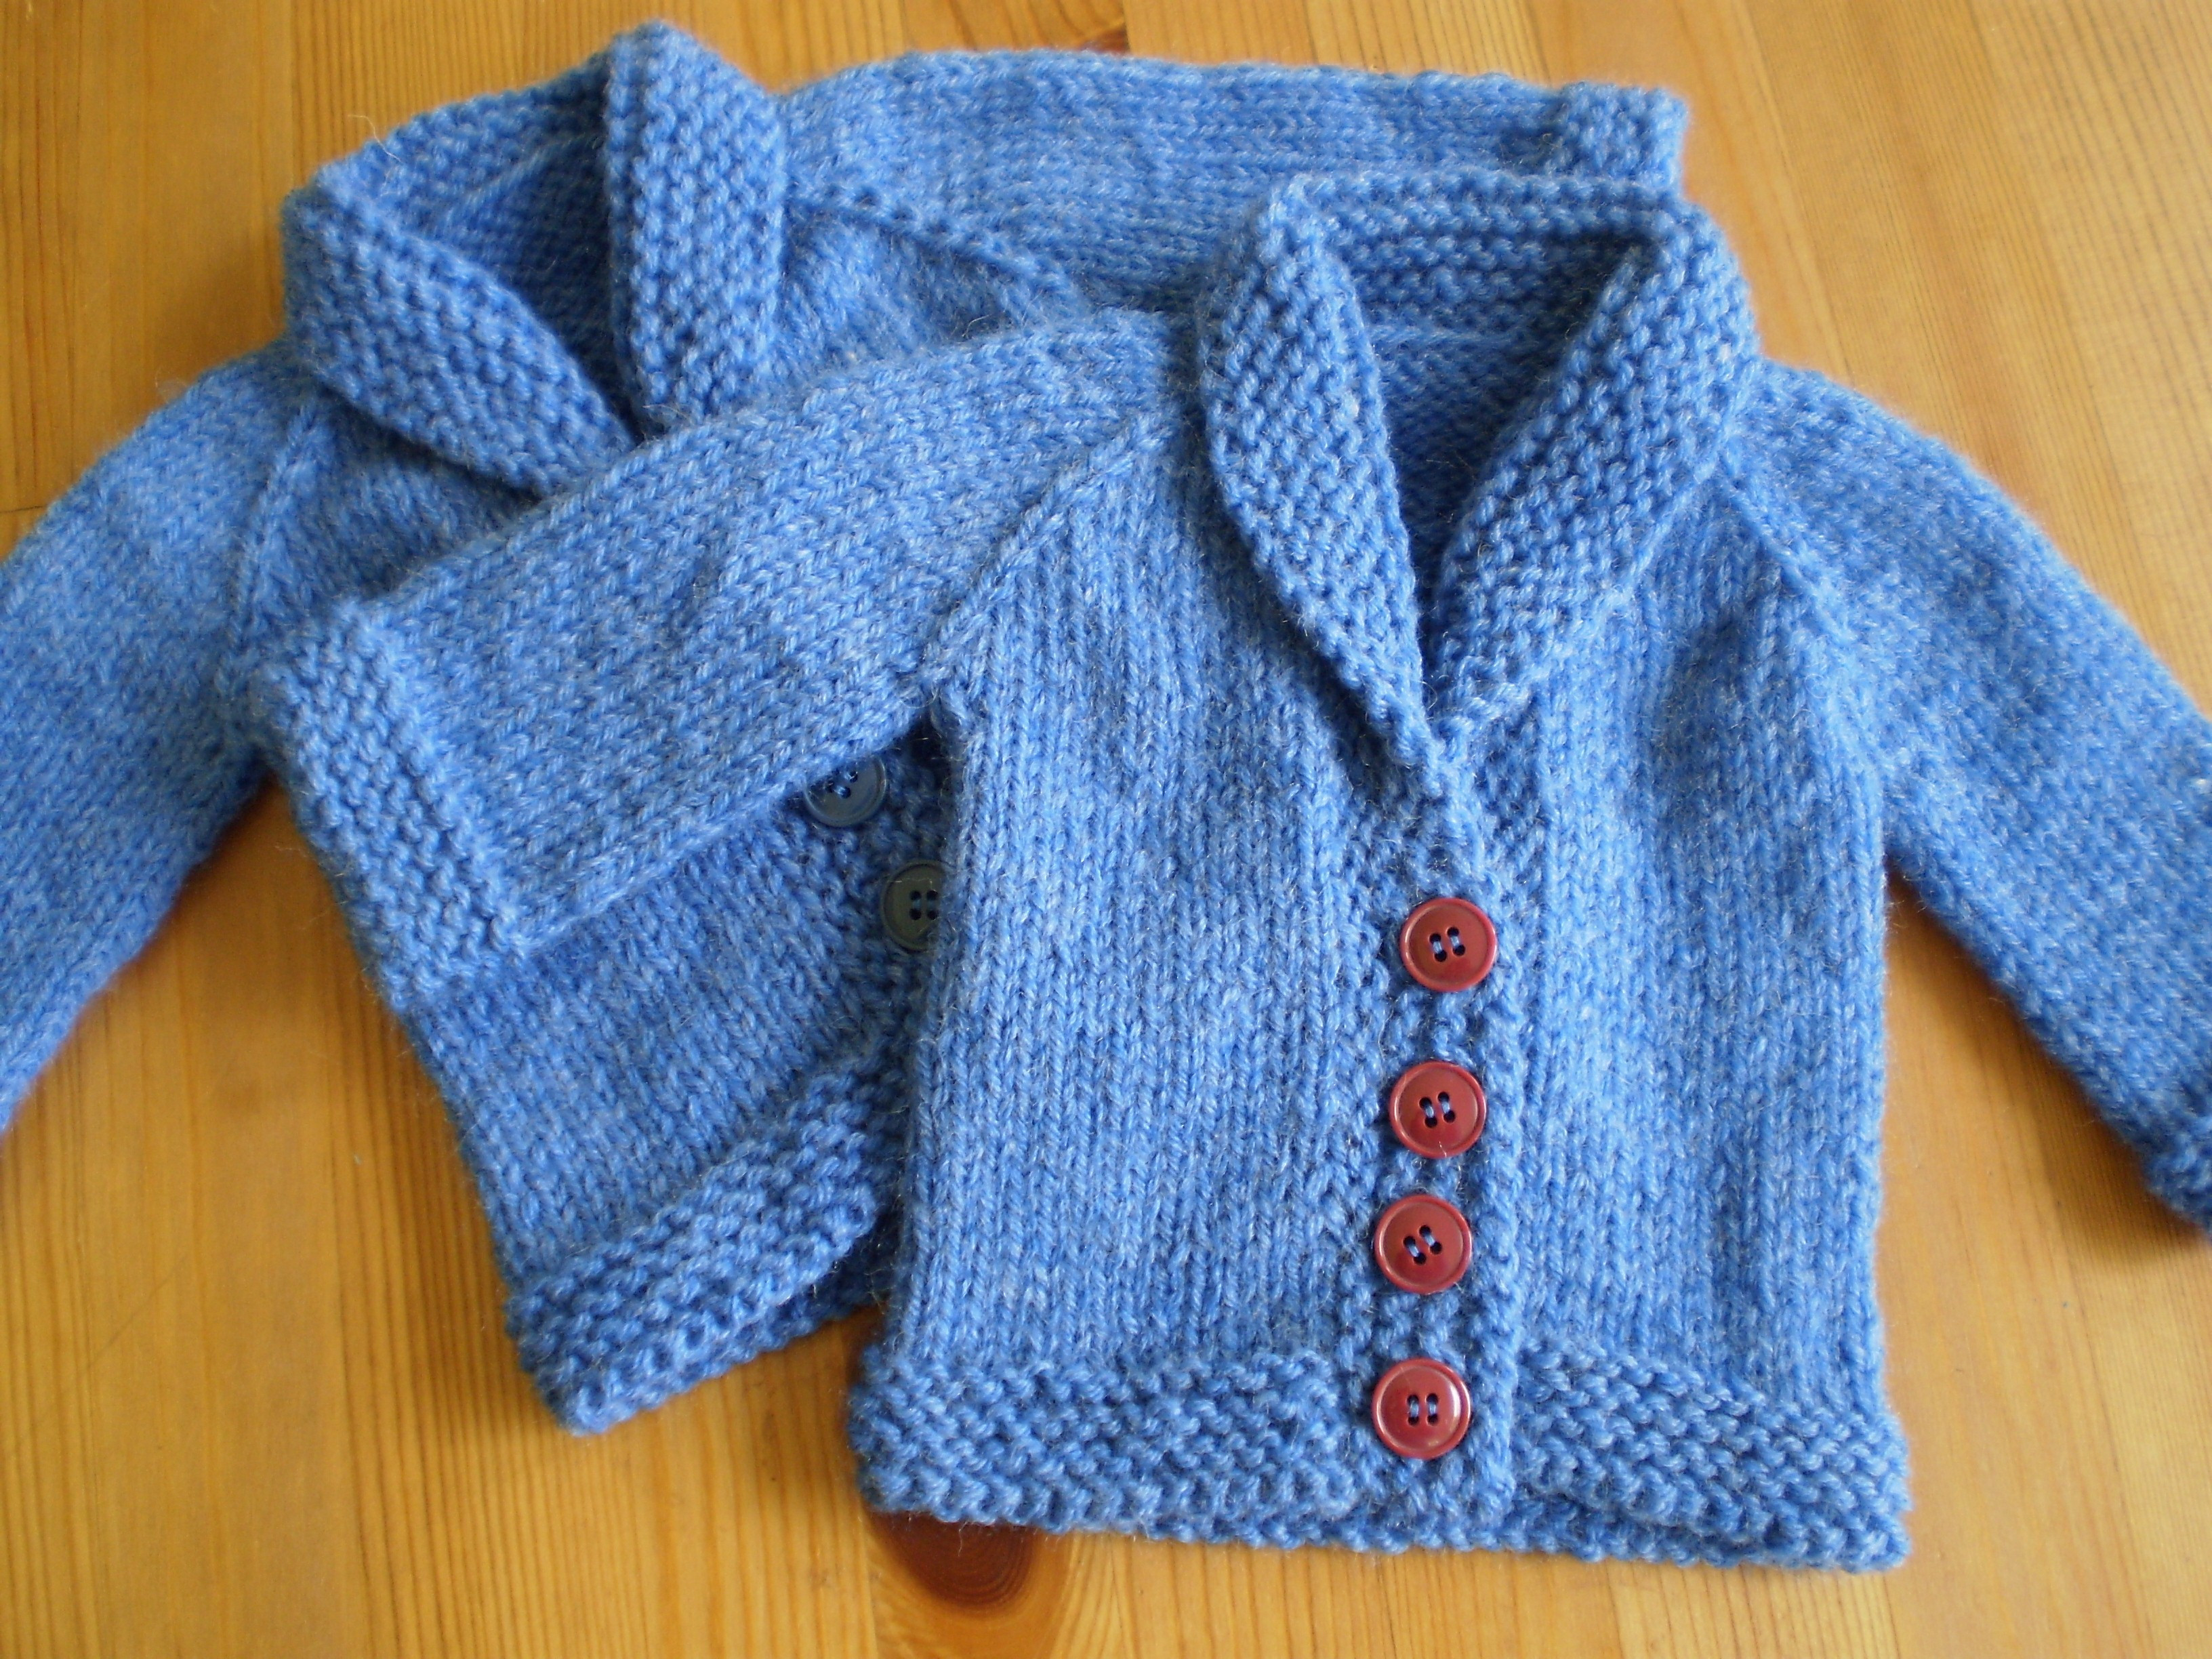 New Easiest Baby Cardigan Knitting Pattern Cashmere Sweater Free Knitting Patterns for Children Of Awesome 47 Models Free Knitting Patterns for Children